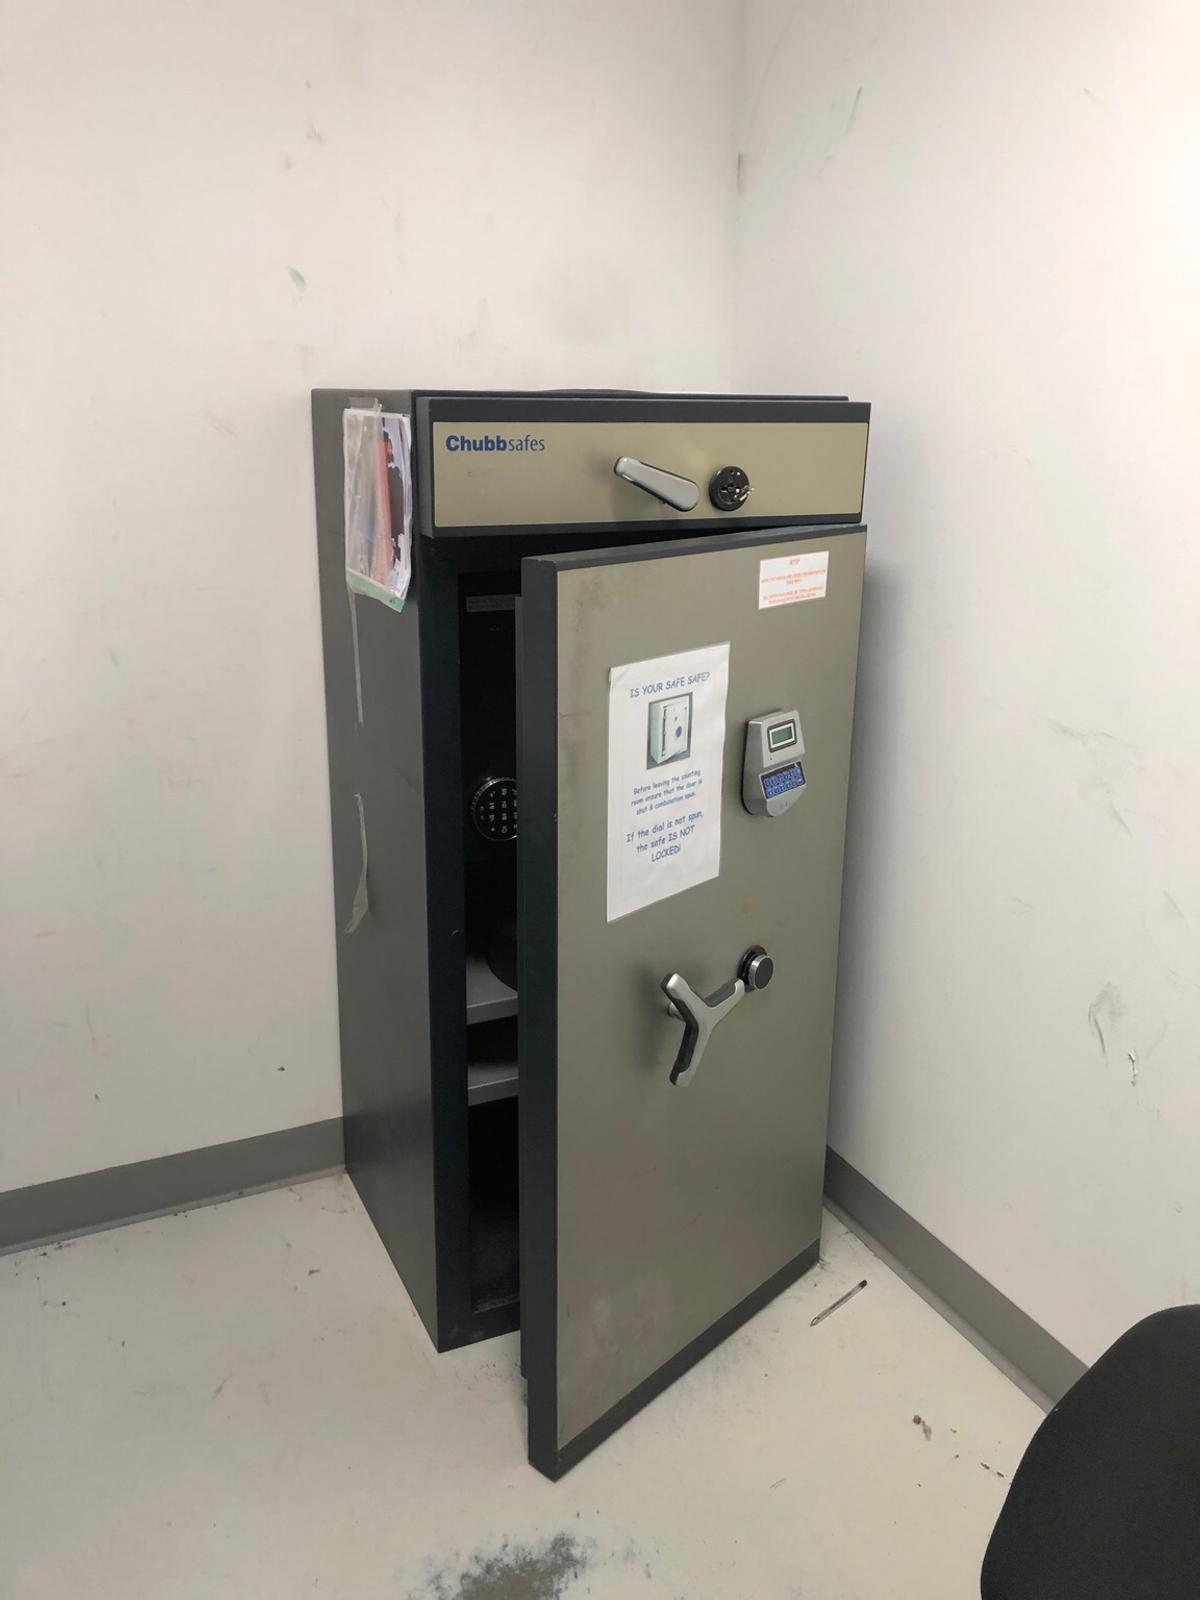 Large Chubb safe electric